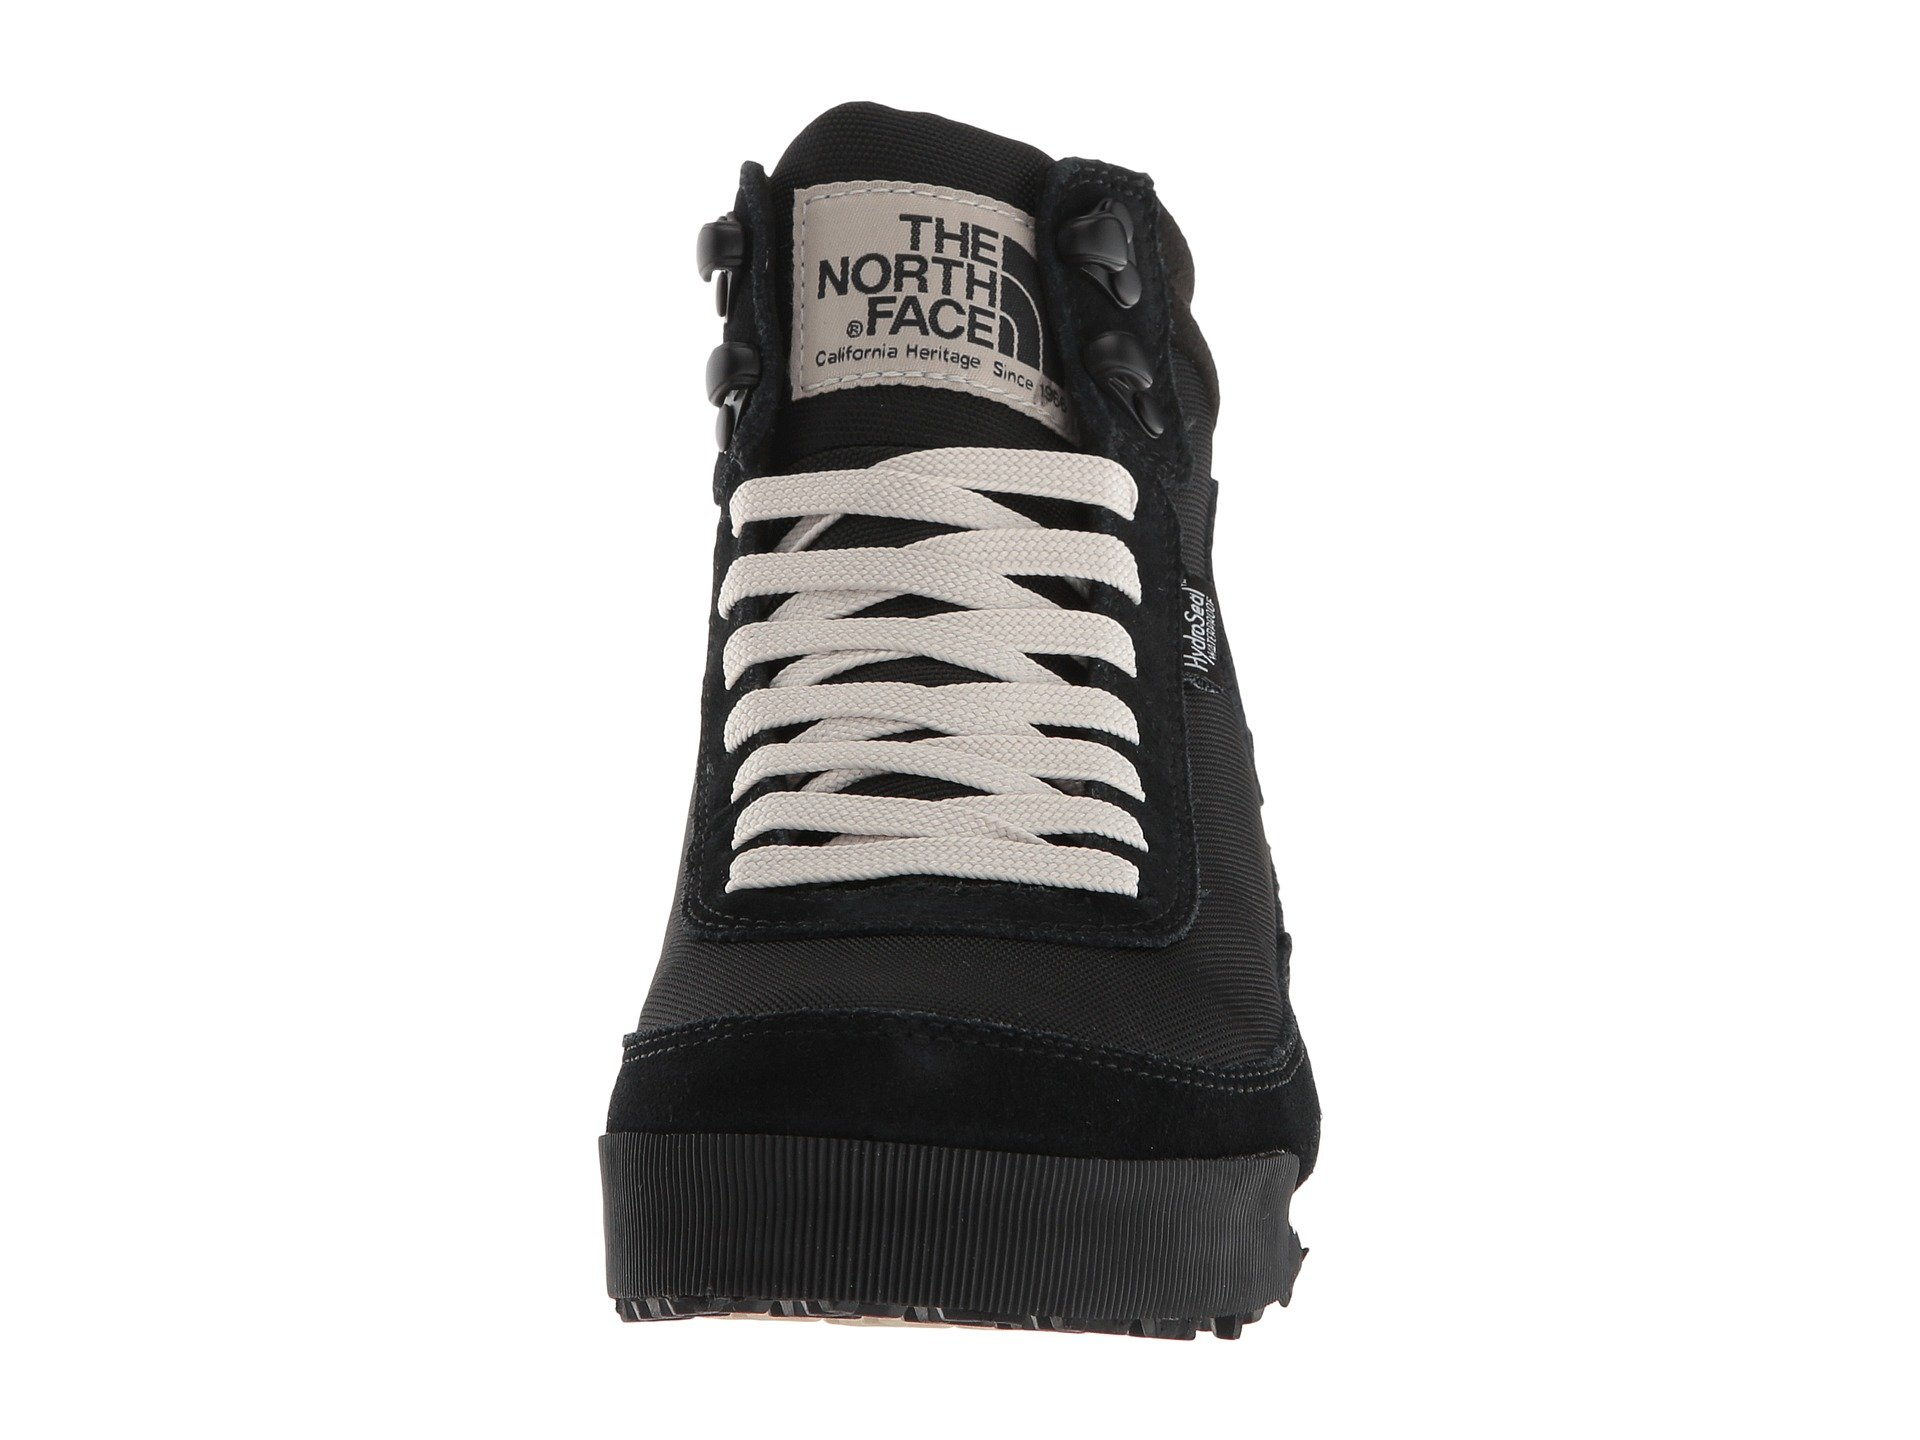 vintage Face berkeley Back Ii The Black to Boot North Tnf White nUxqIHz1